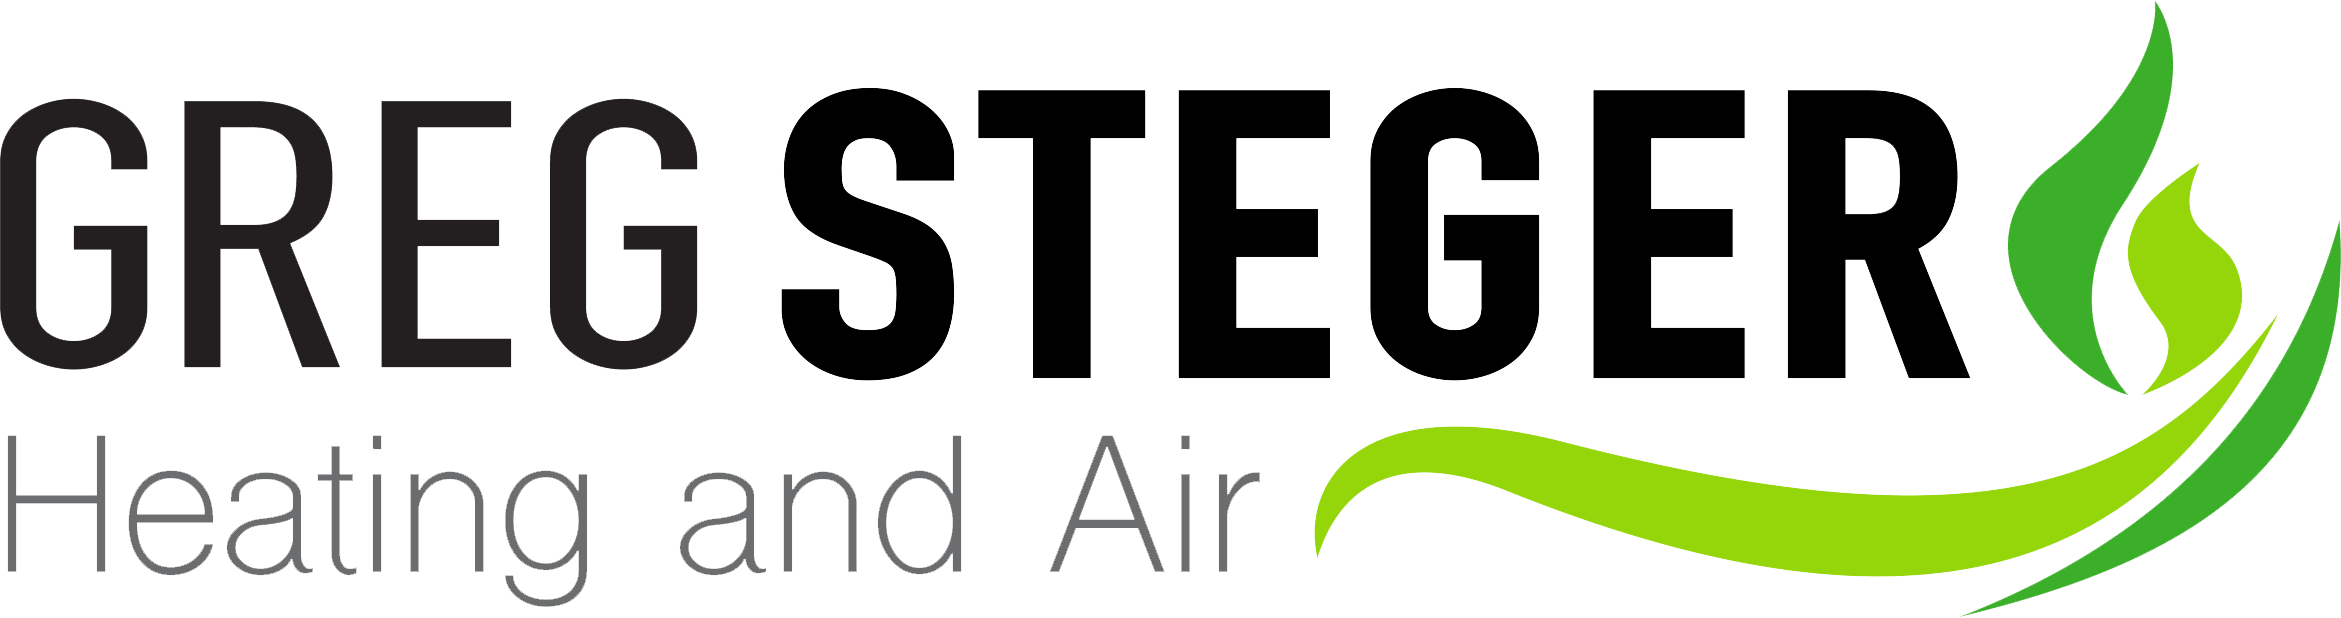 Greg Steger Heating and Air! Your go to for Furnace and Heat Pump repair in Sheboygan WI!